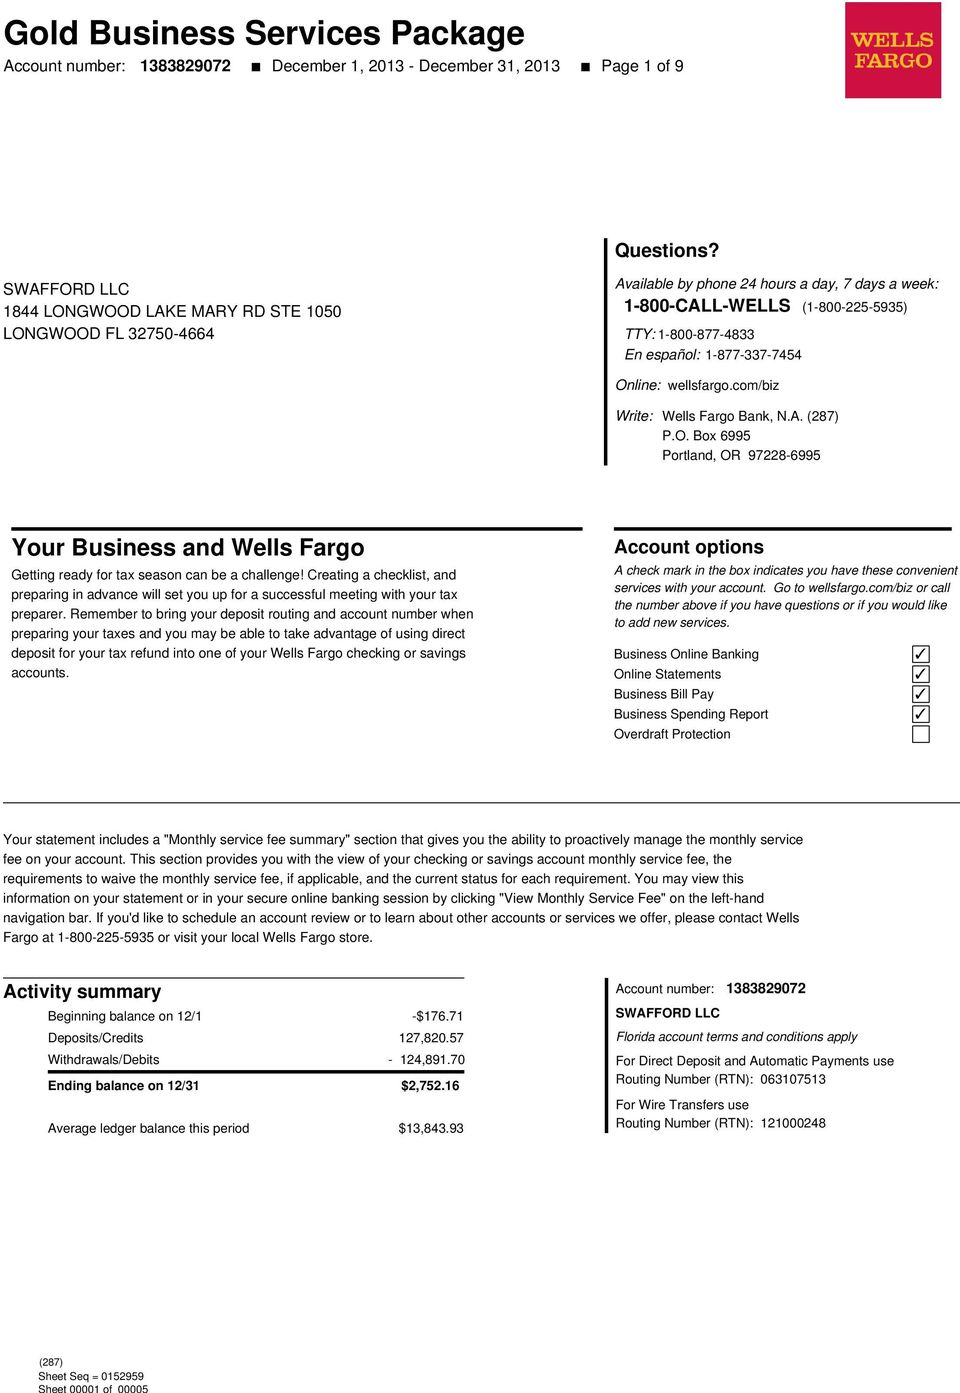 Gold Business Services Package - PDF